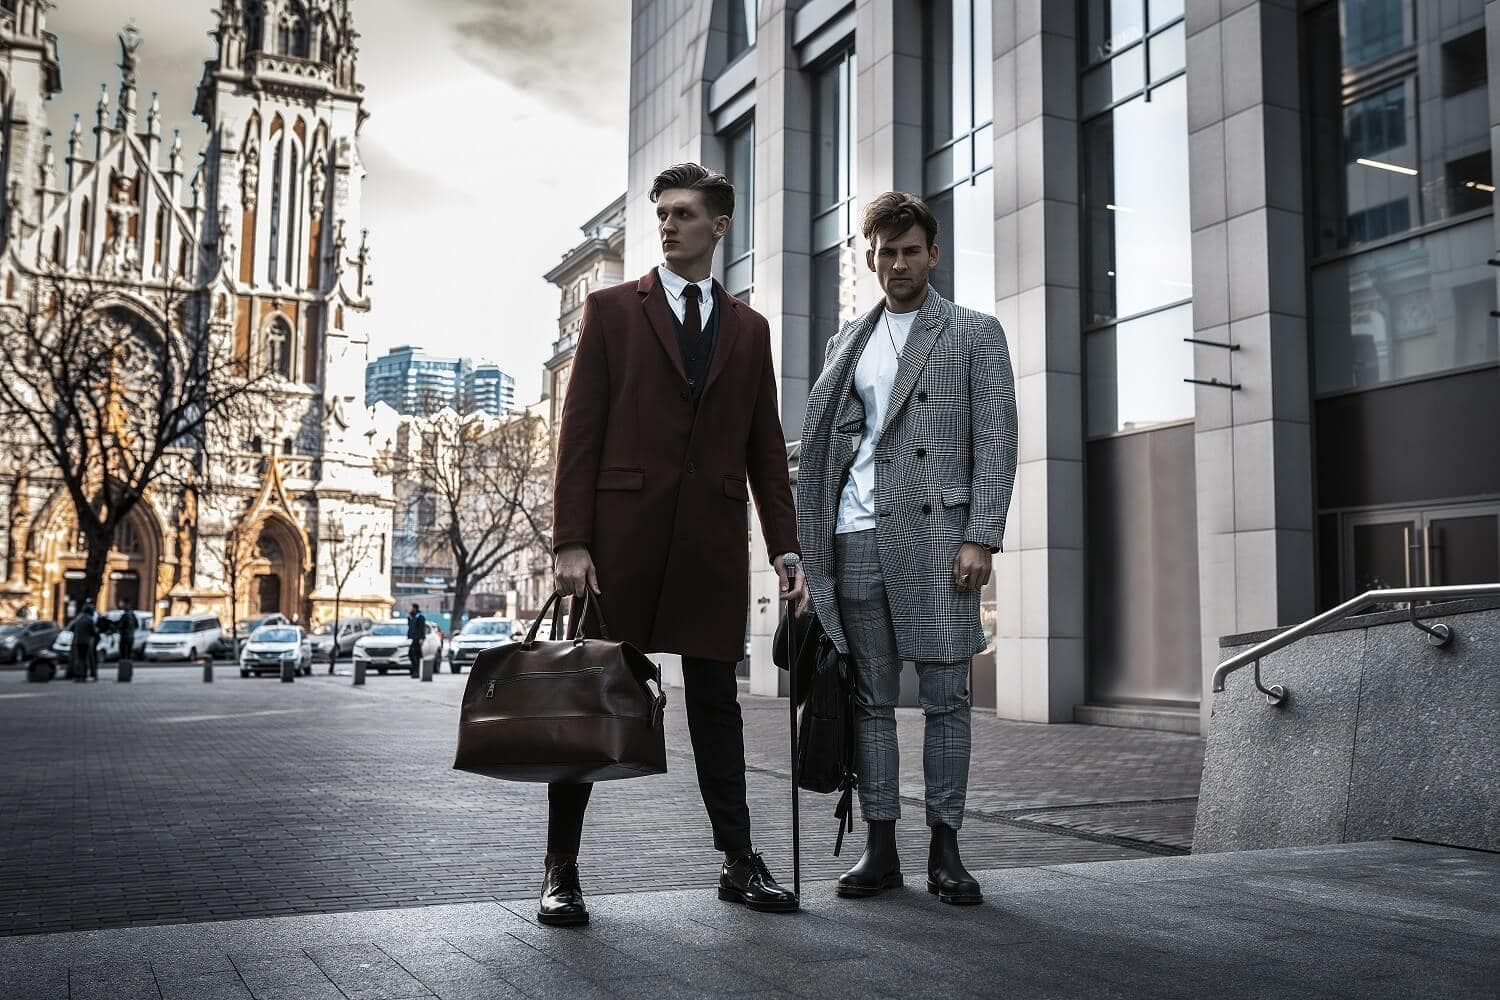 The Short Hem Versus the Break at the Shoe or Thom Browne Look: What is Best for Your Style?